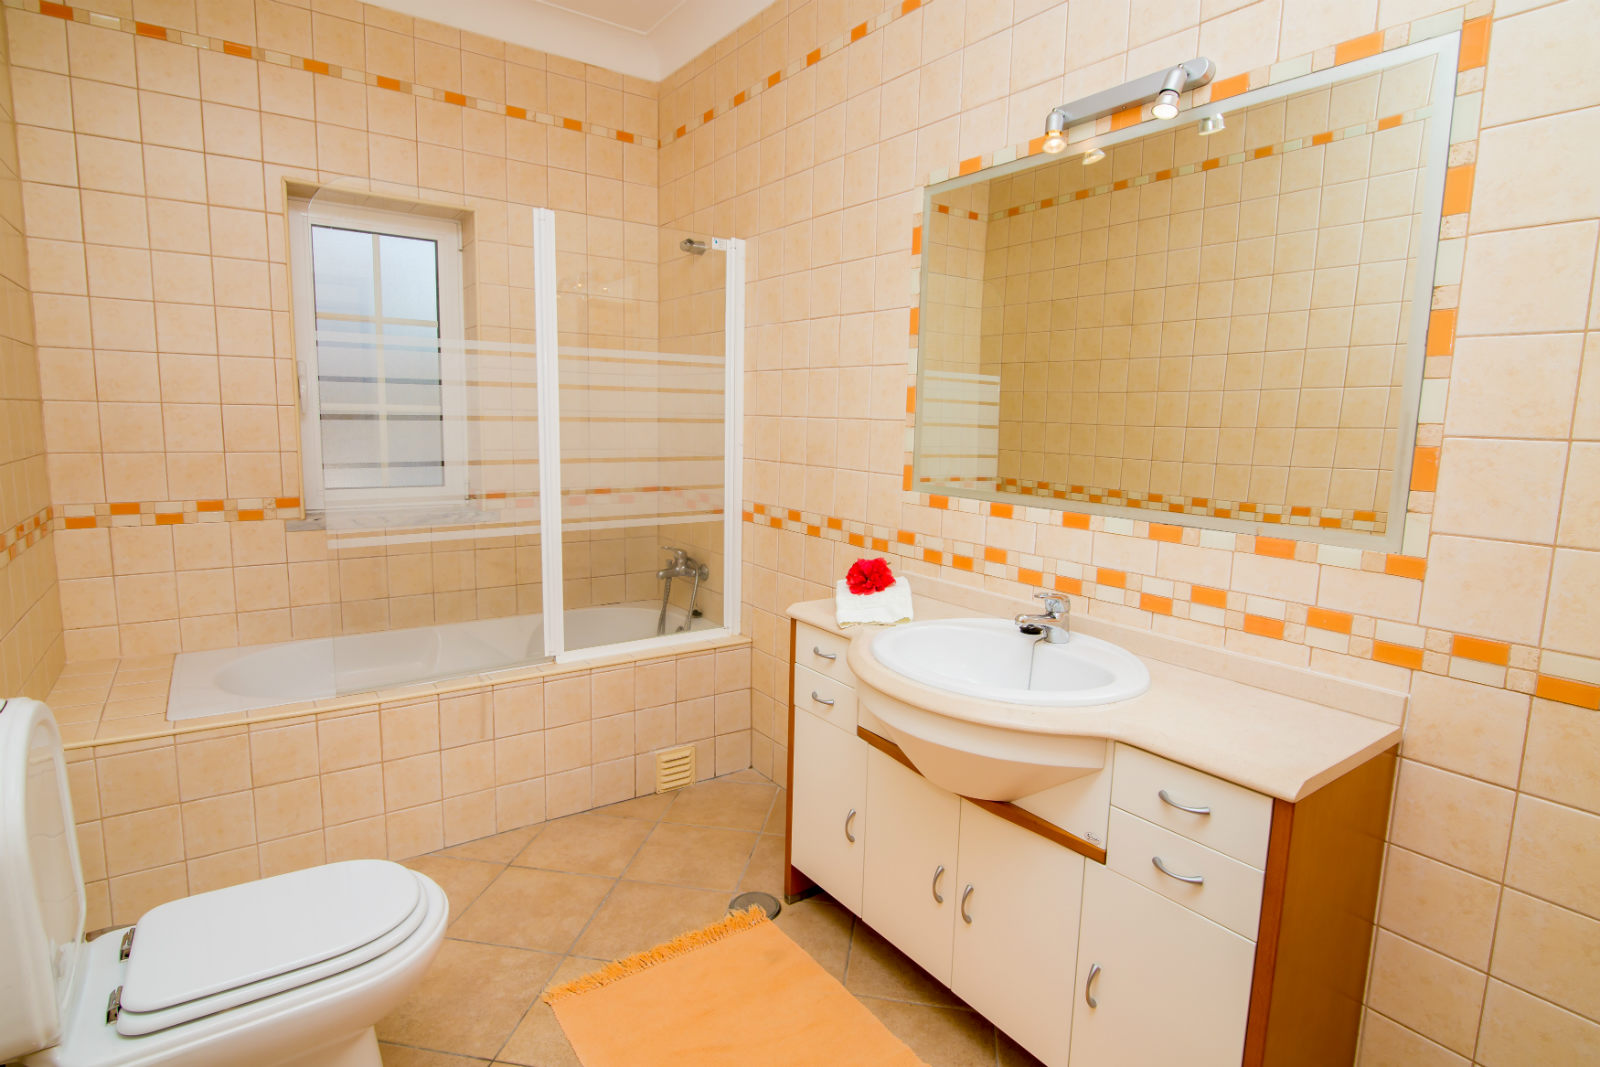 G/F bedrooms share this beautiful bathroom. In 2015 with walk-in shower!